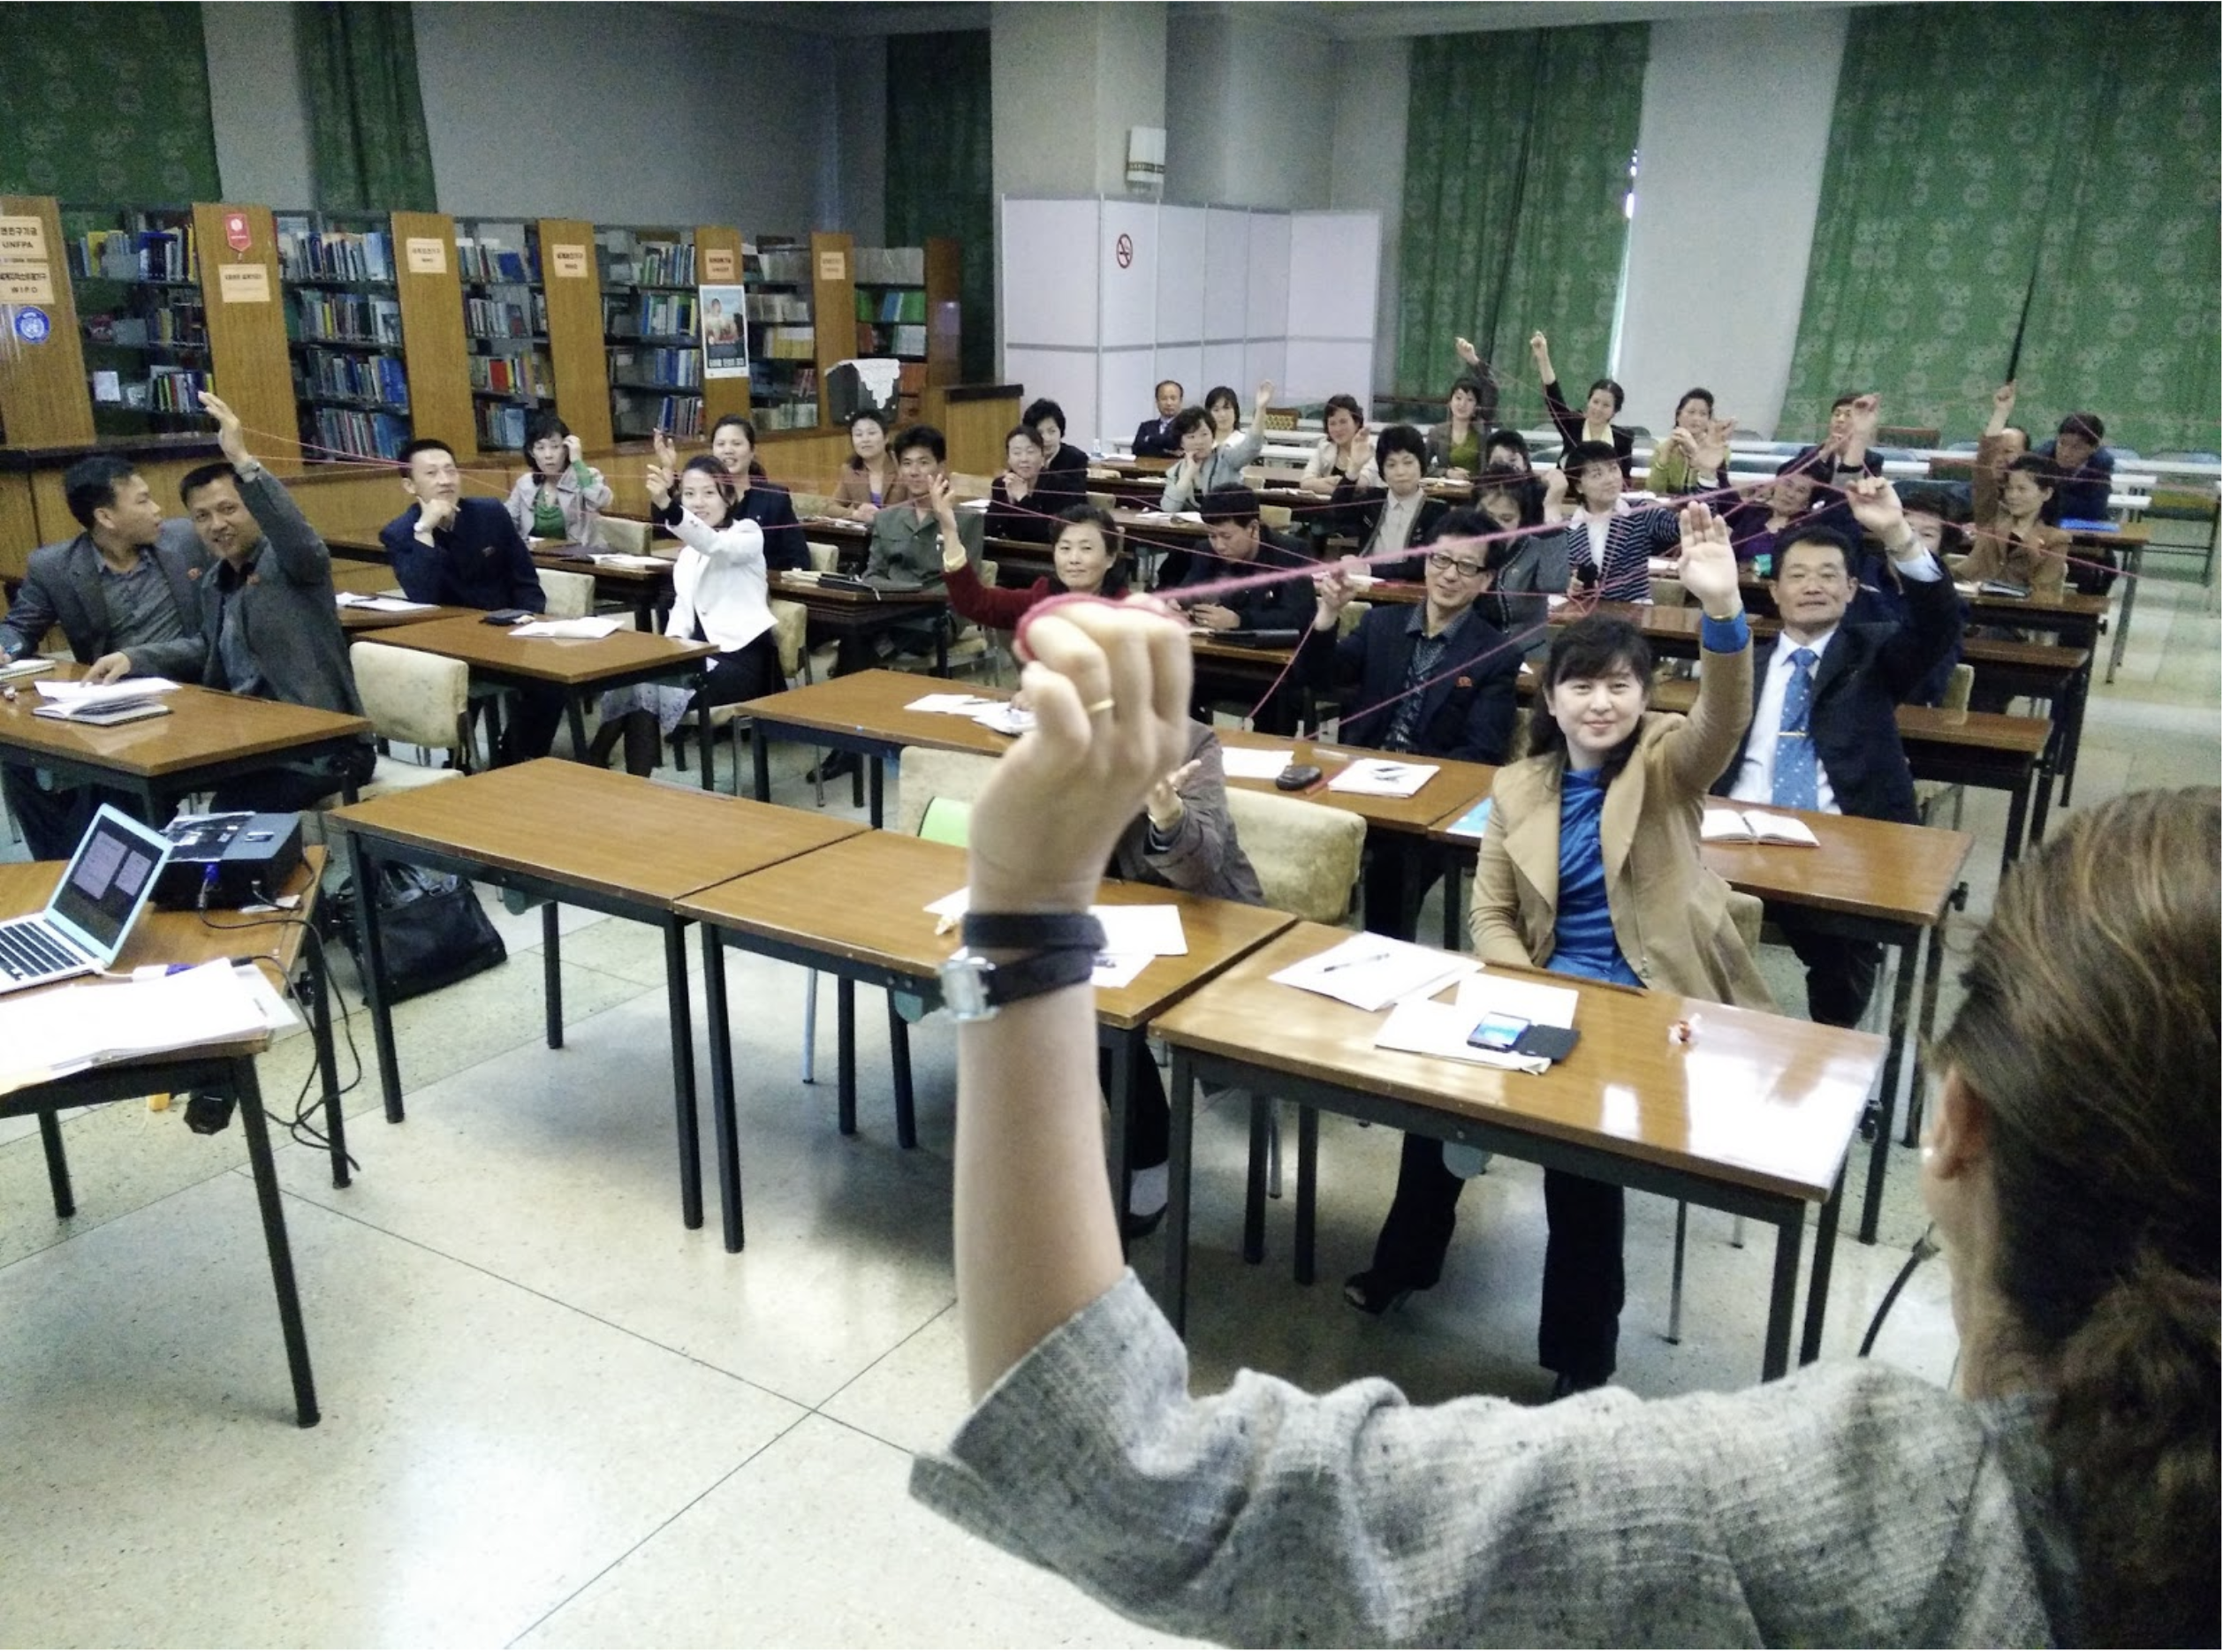 A Choson Exchange training session in North Korea